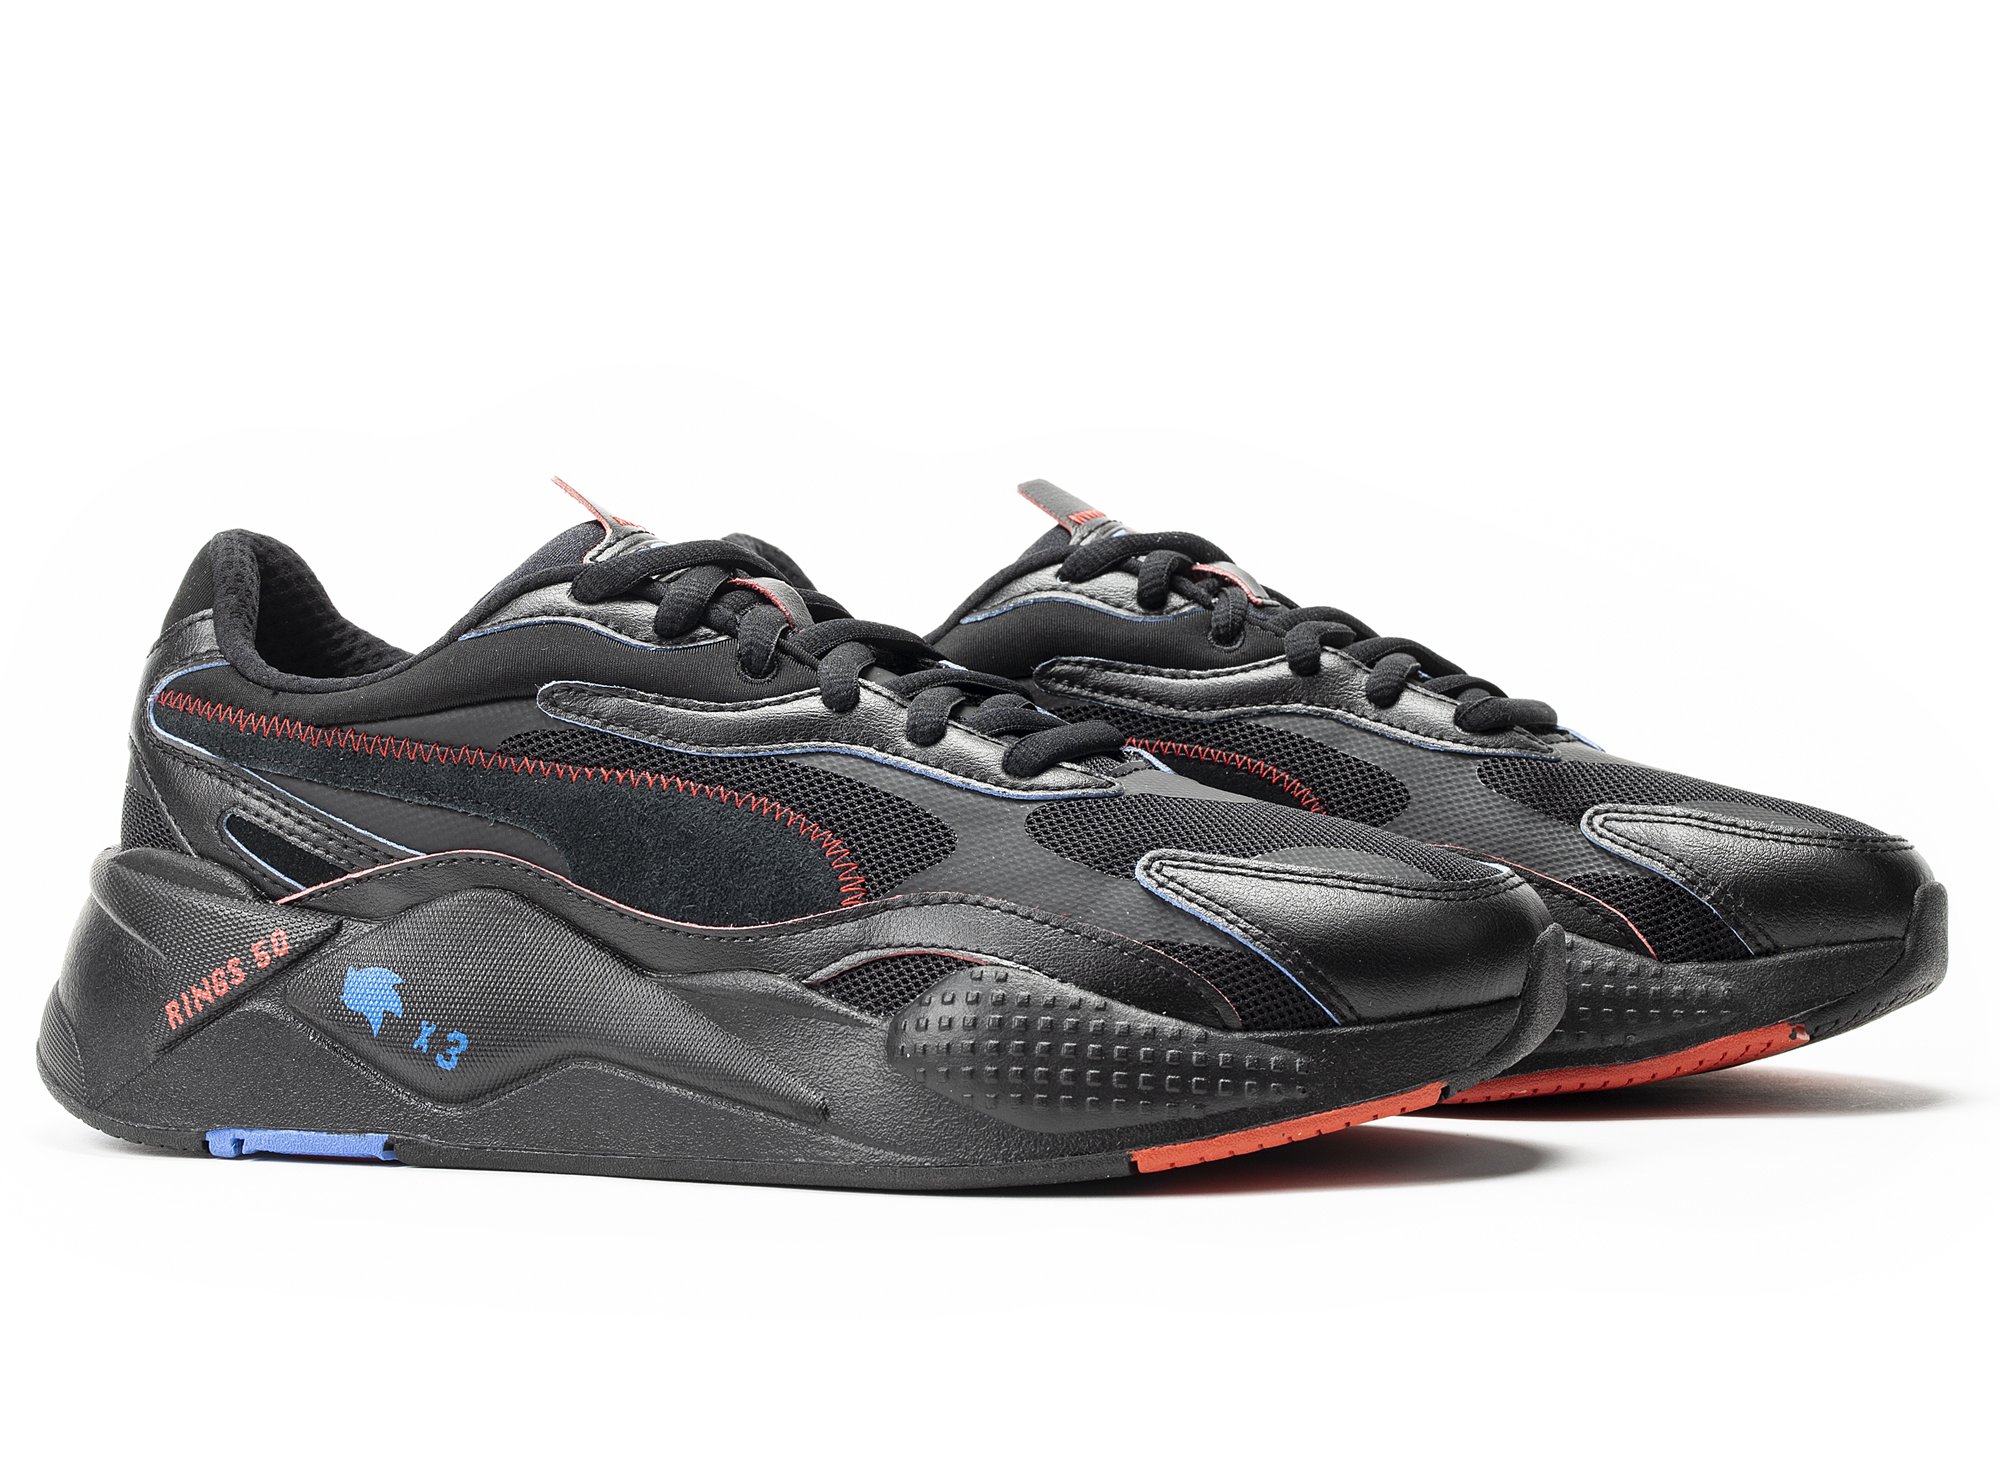 Puma RS-X3 Sonic the Hedgehog - Oneness Boutique